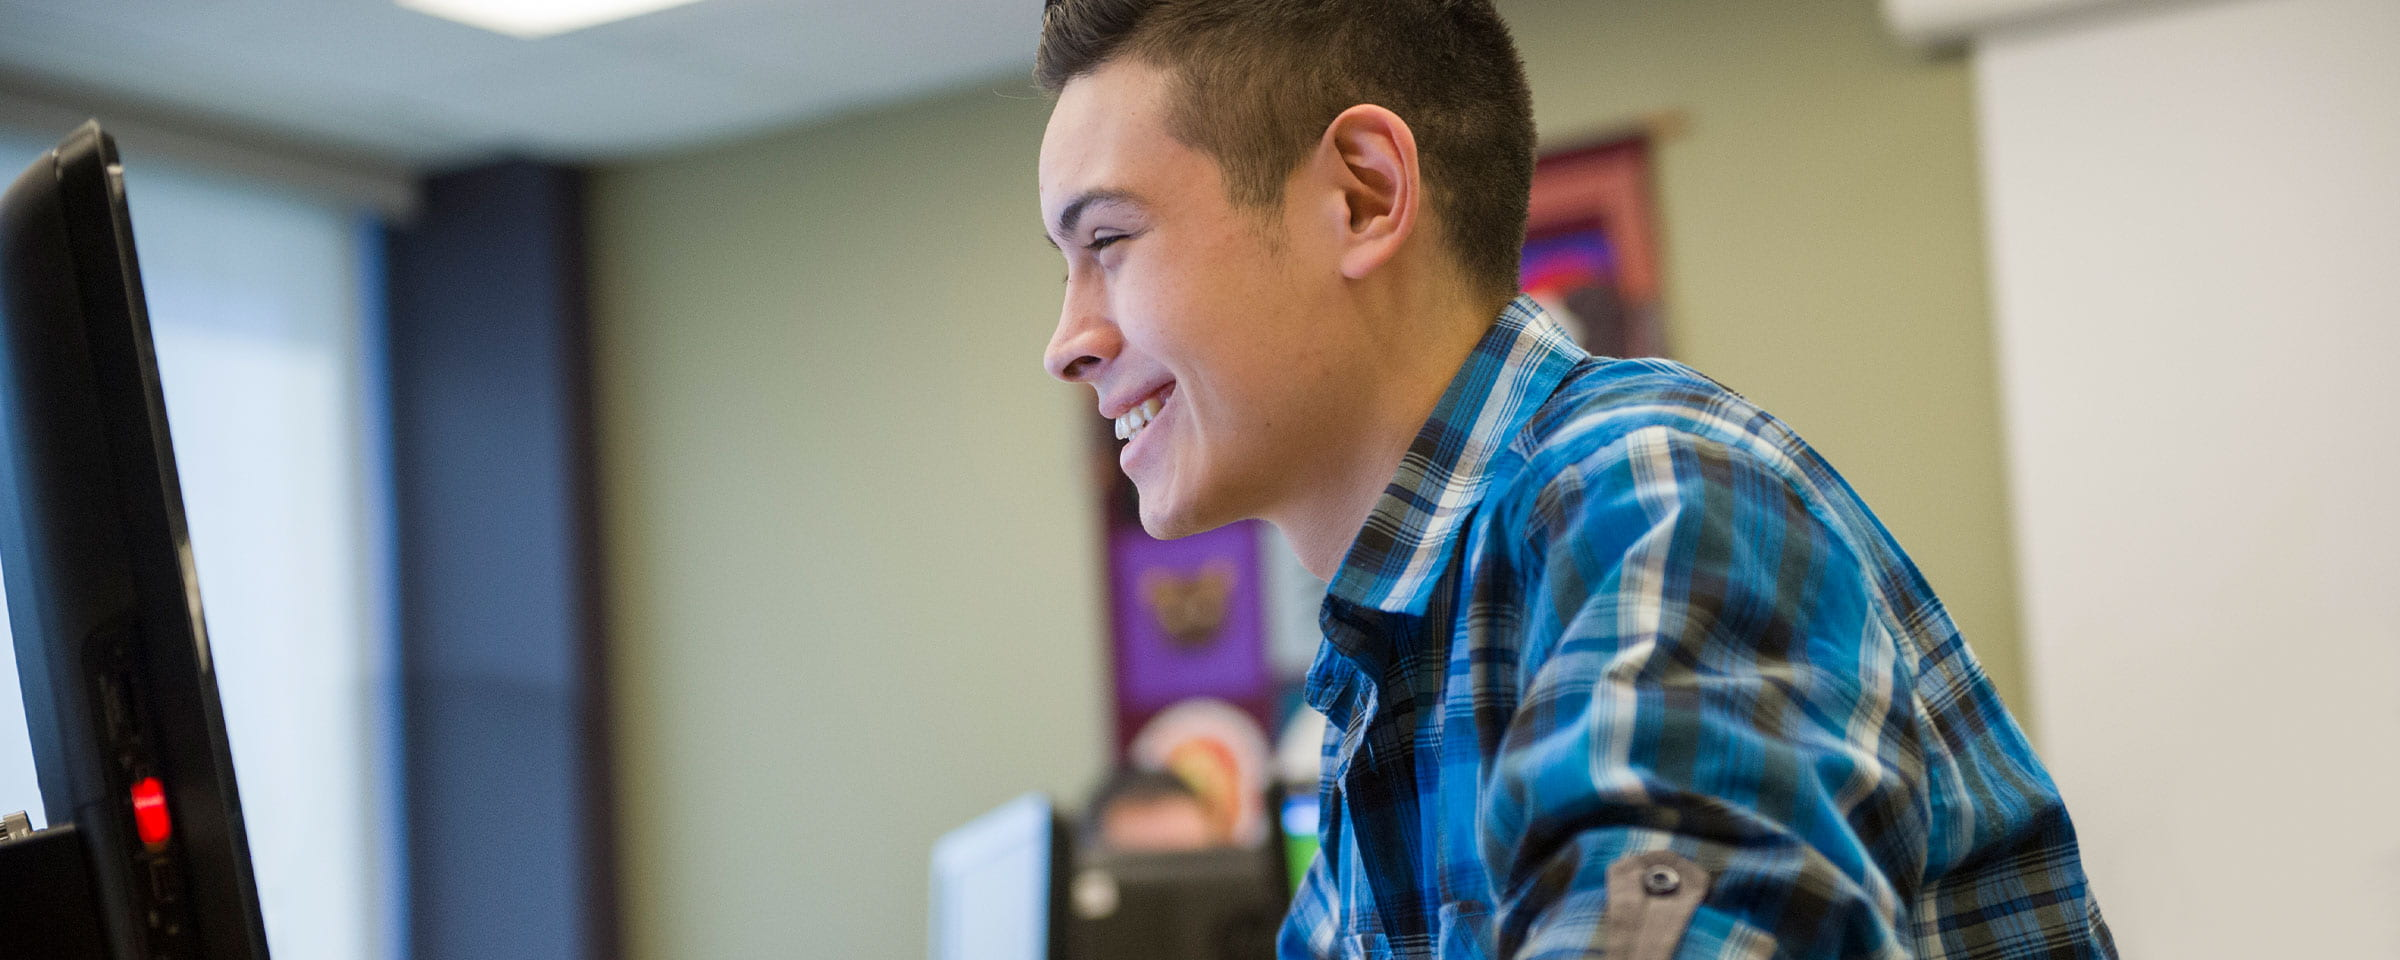 Smiling male student looking at computer screen